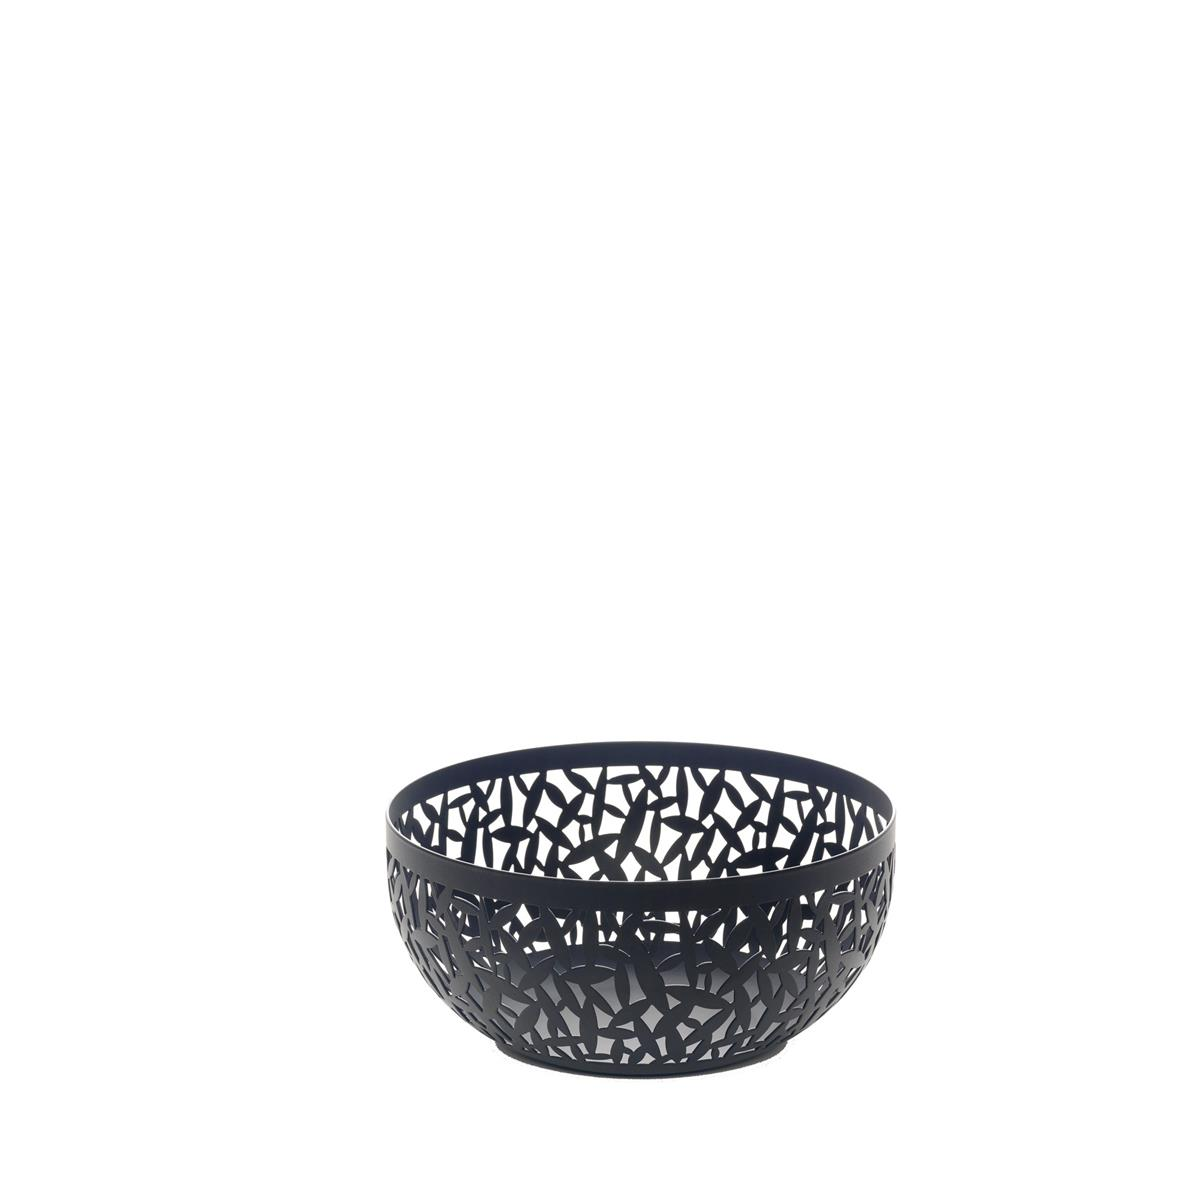 Alessi-CACTUS! Perforated fruit bowl in steel colored with resin, black